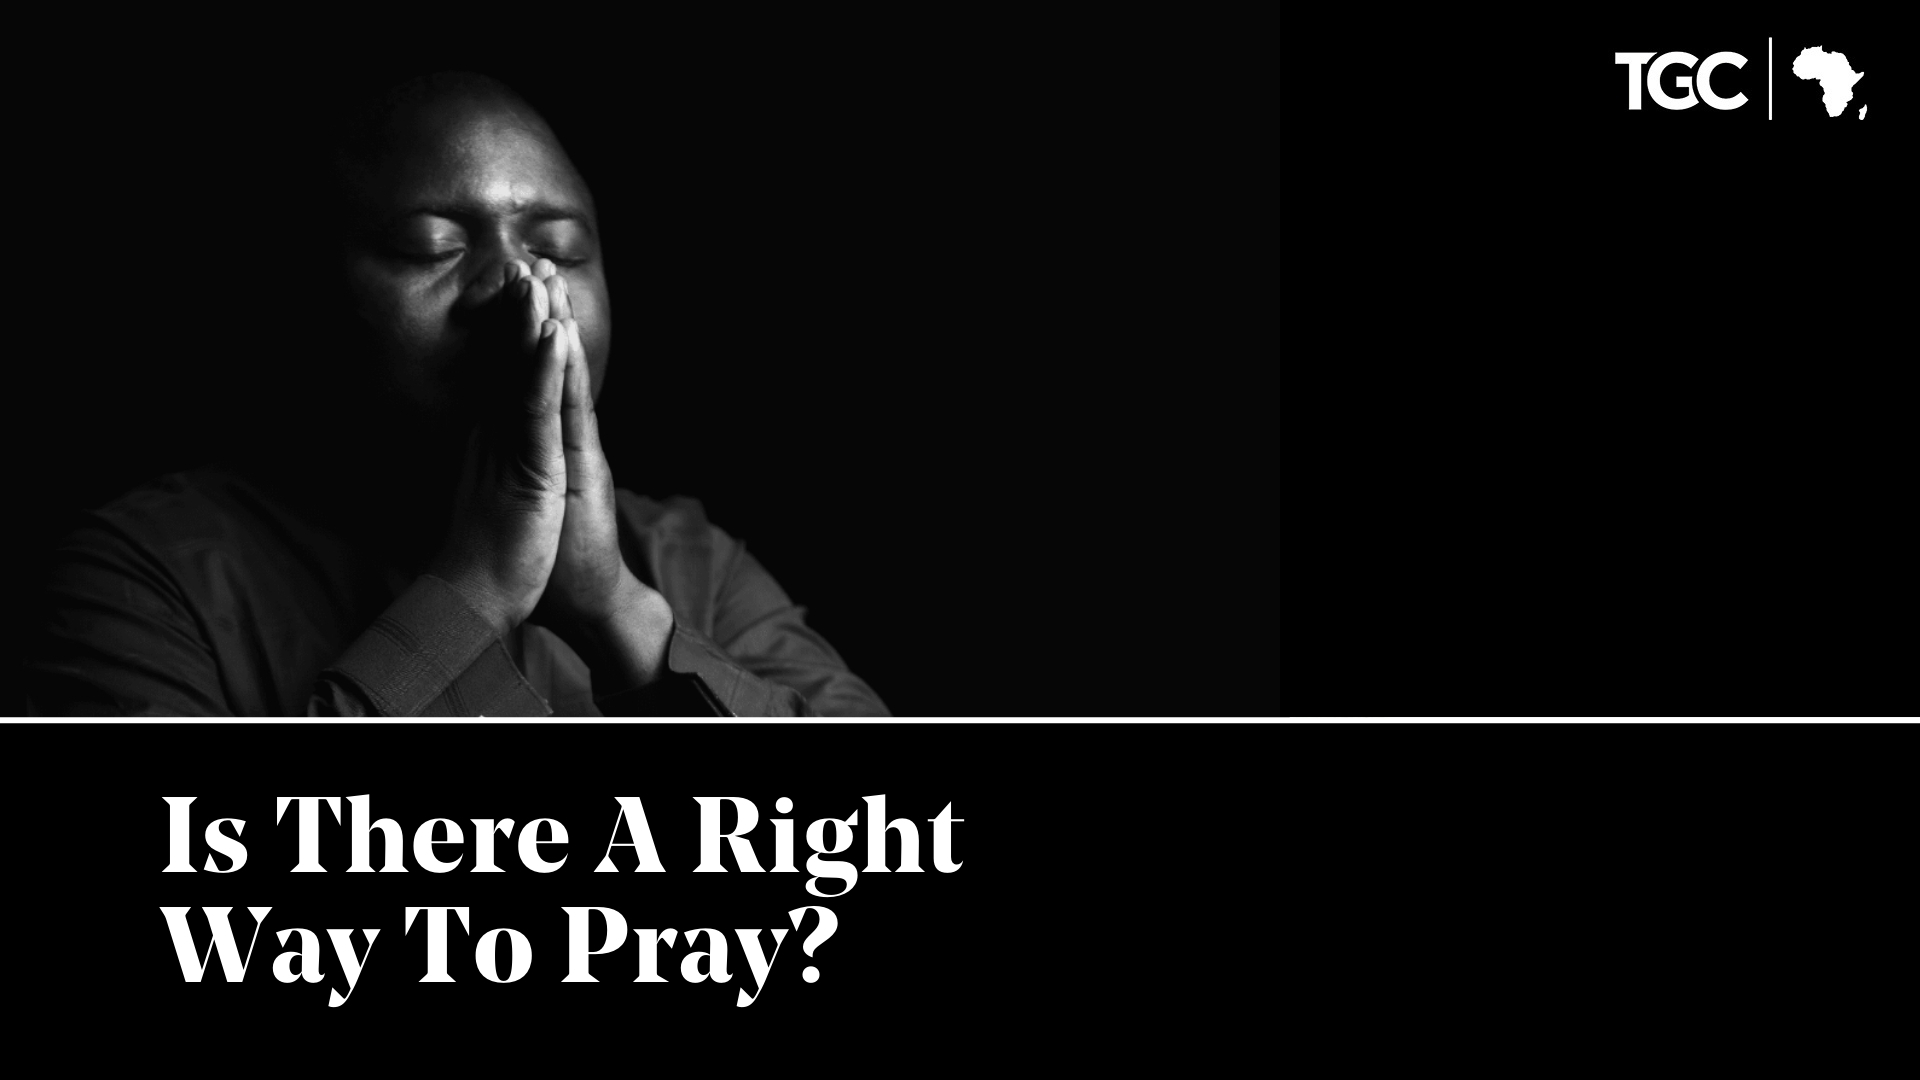 Is There A Right Way To Pray? African Man in Prayer